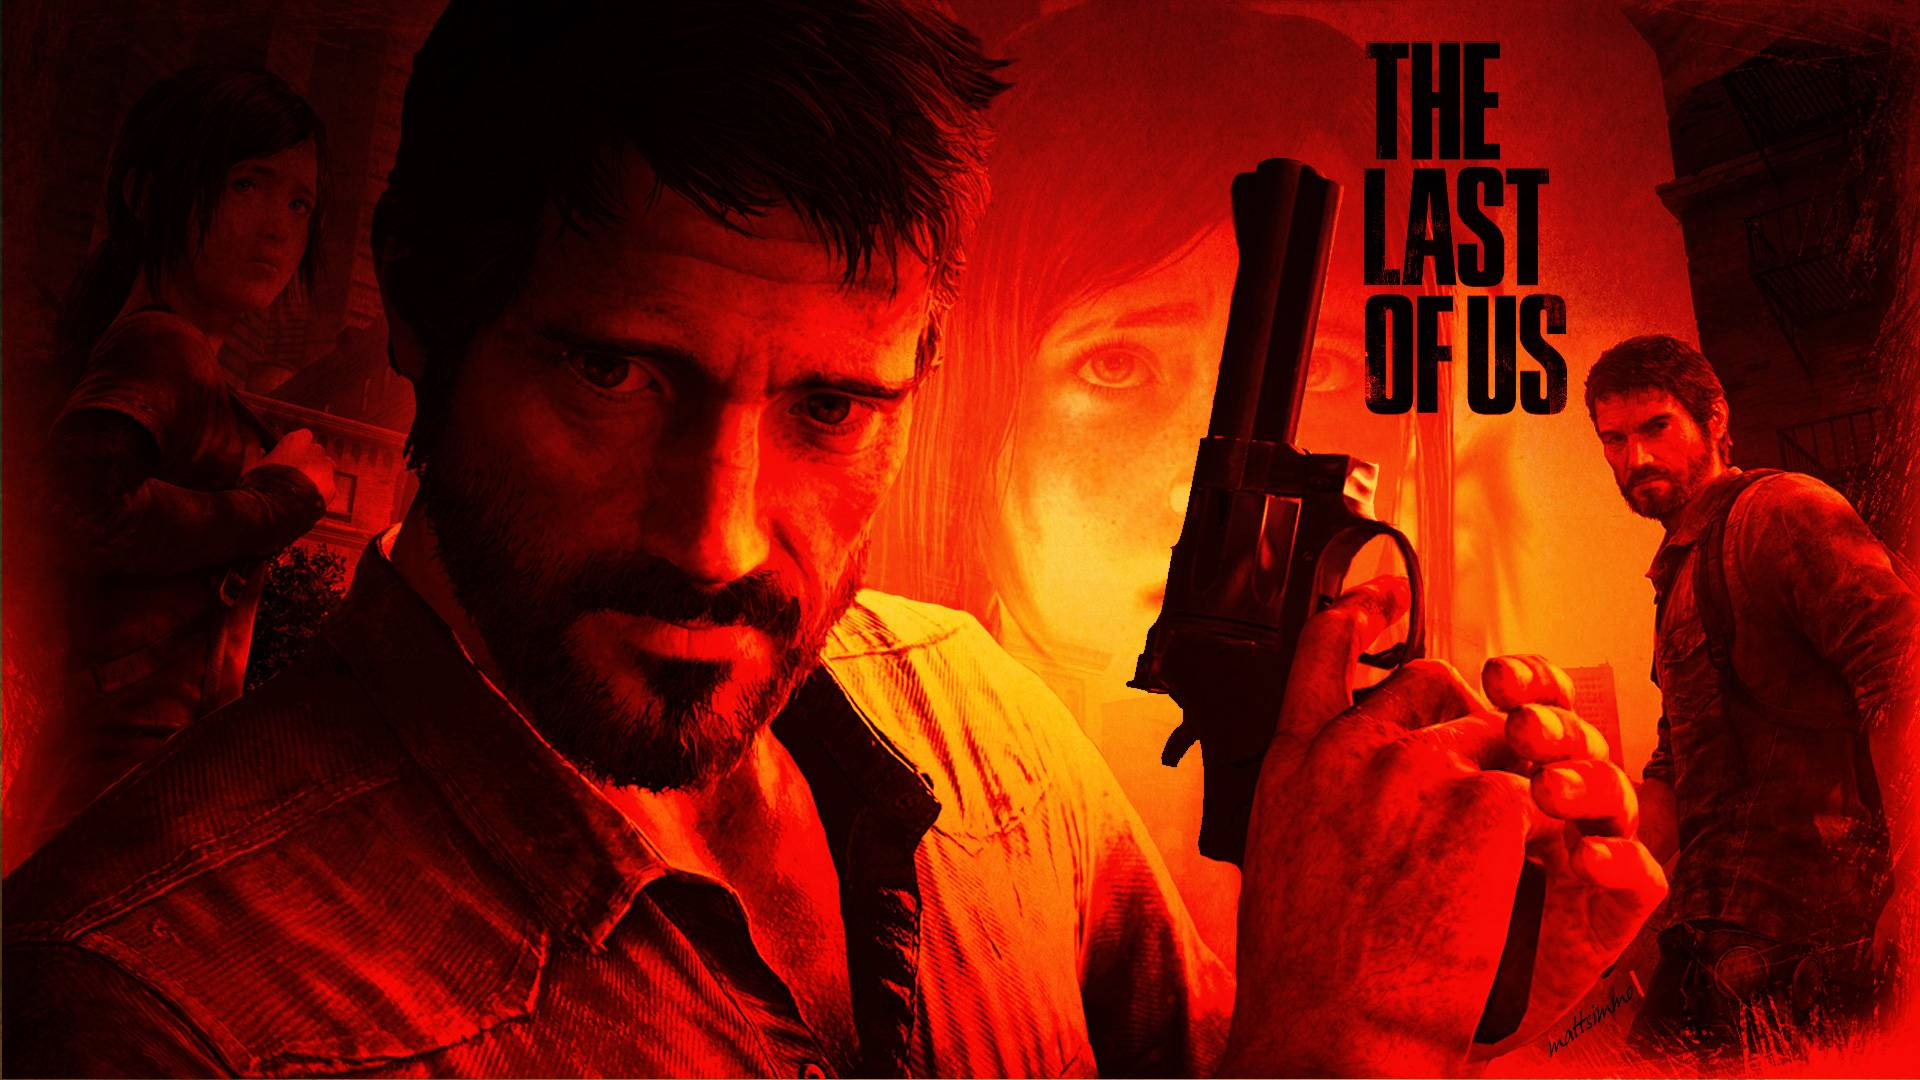 The Last Of Us Wallpaper 8 Wallpapersbq